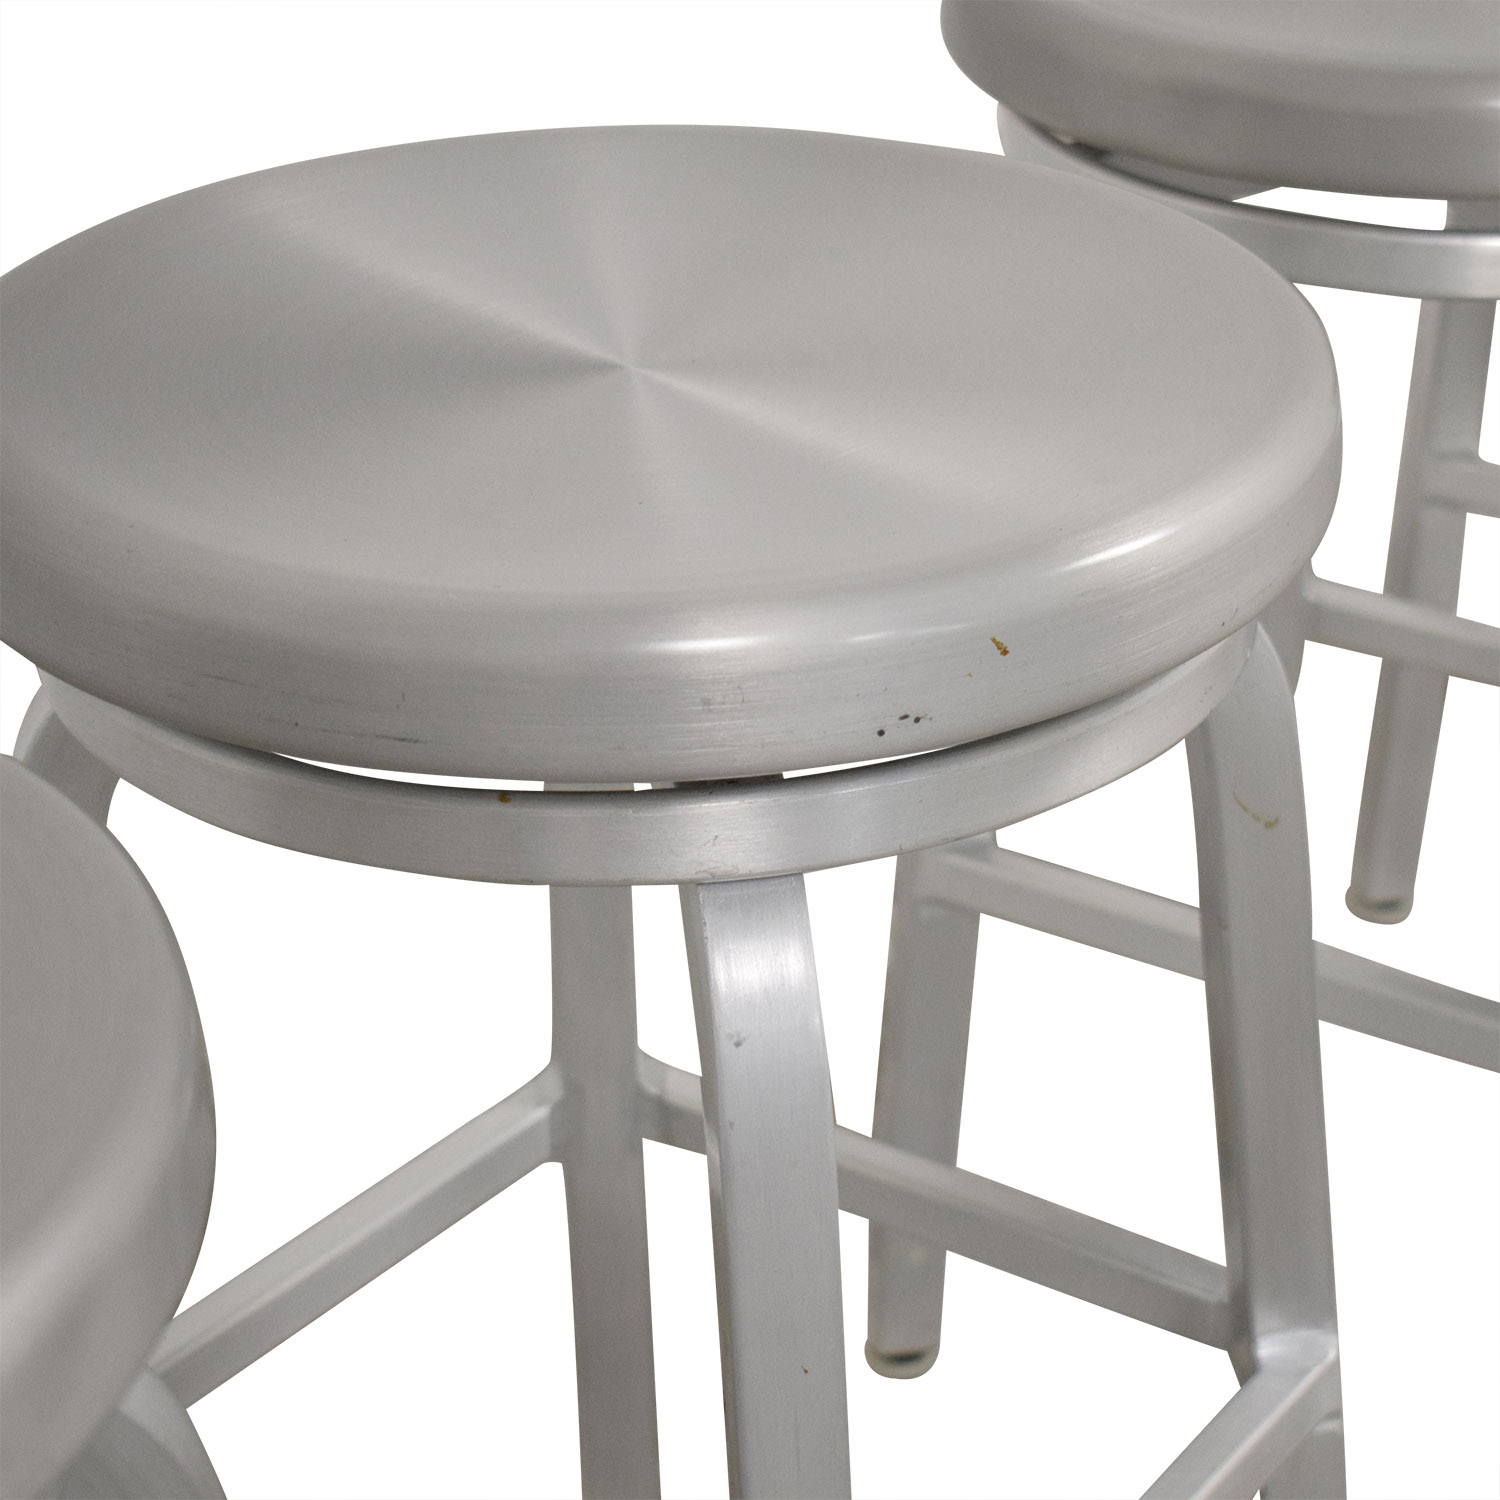 buy Crate & Barrel Crate & Barrel Spin Swivel Backless Counter Stool online